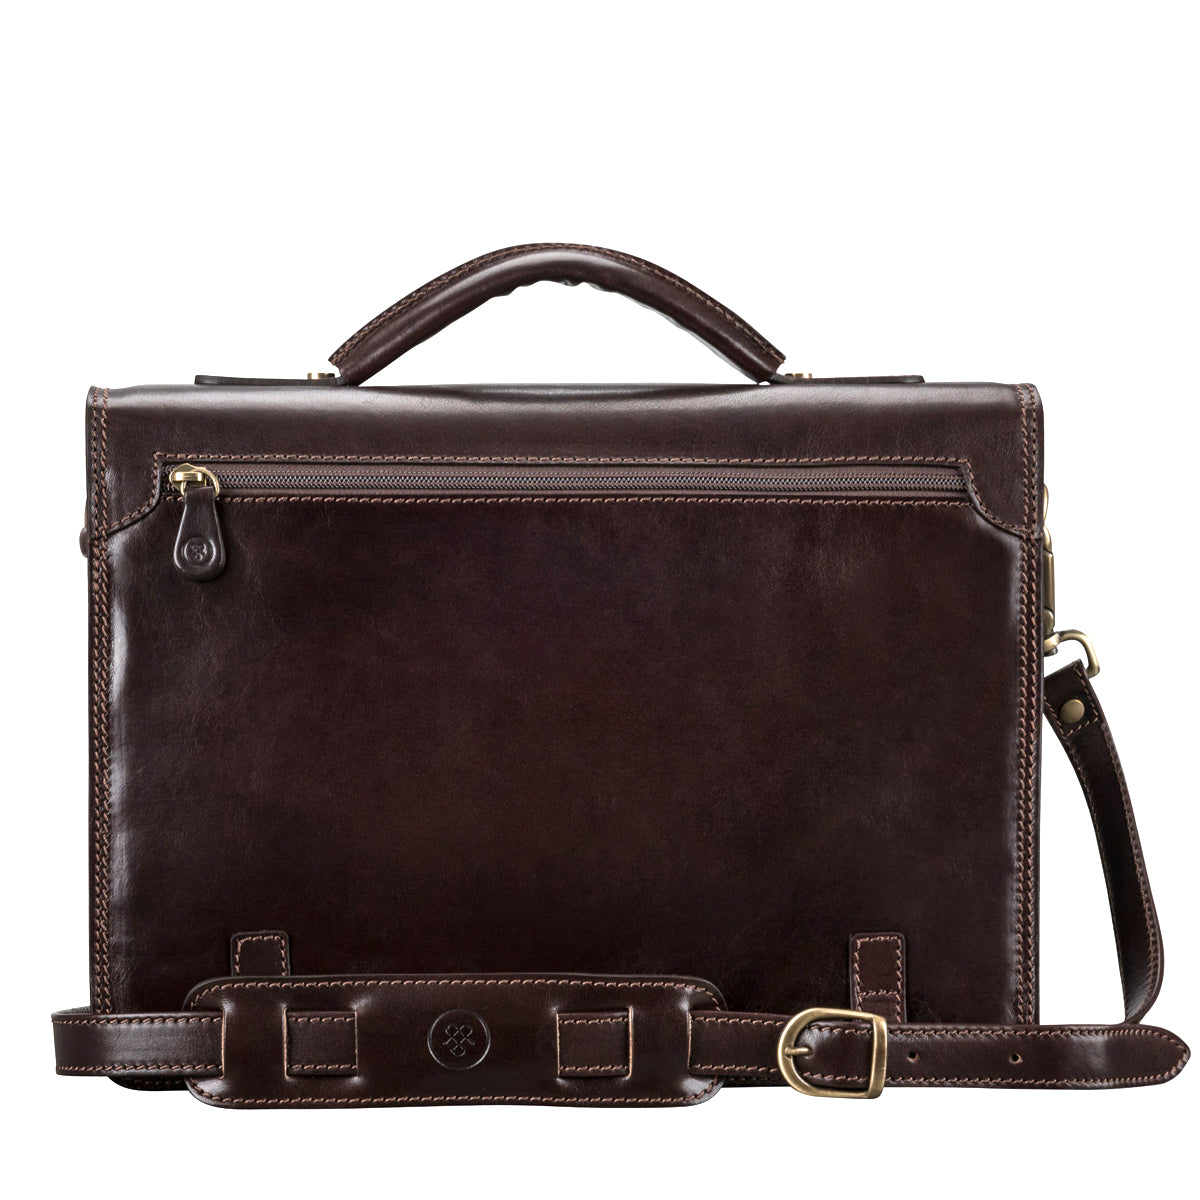 Image 4 of the 'Battista' Brown Veg-Tanned Leather Satchel Briefcase